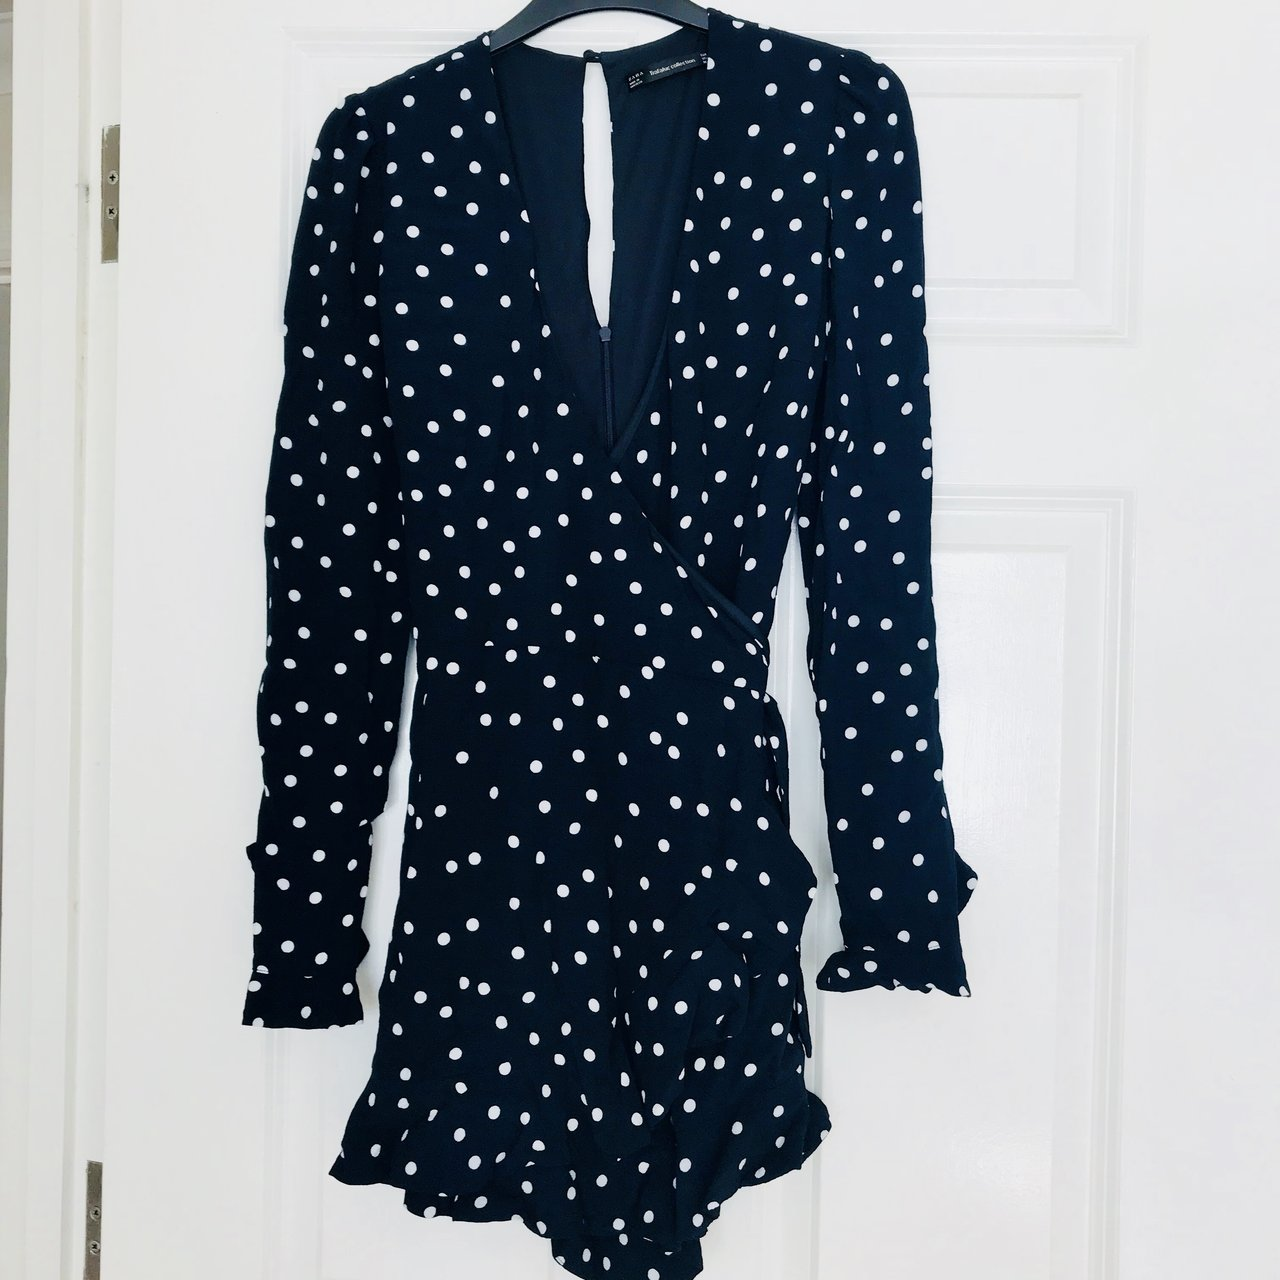 ee07c4e54371 Brand New never worn - Zara Navy   White Spotty Long with - Depop